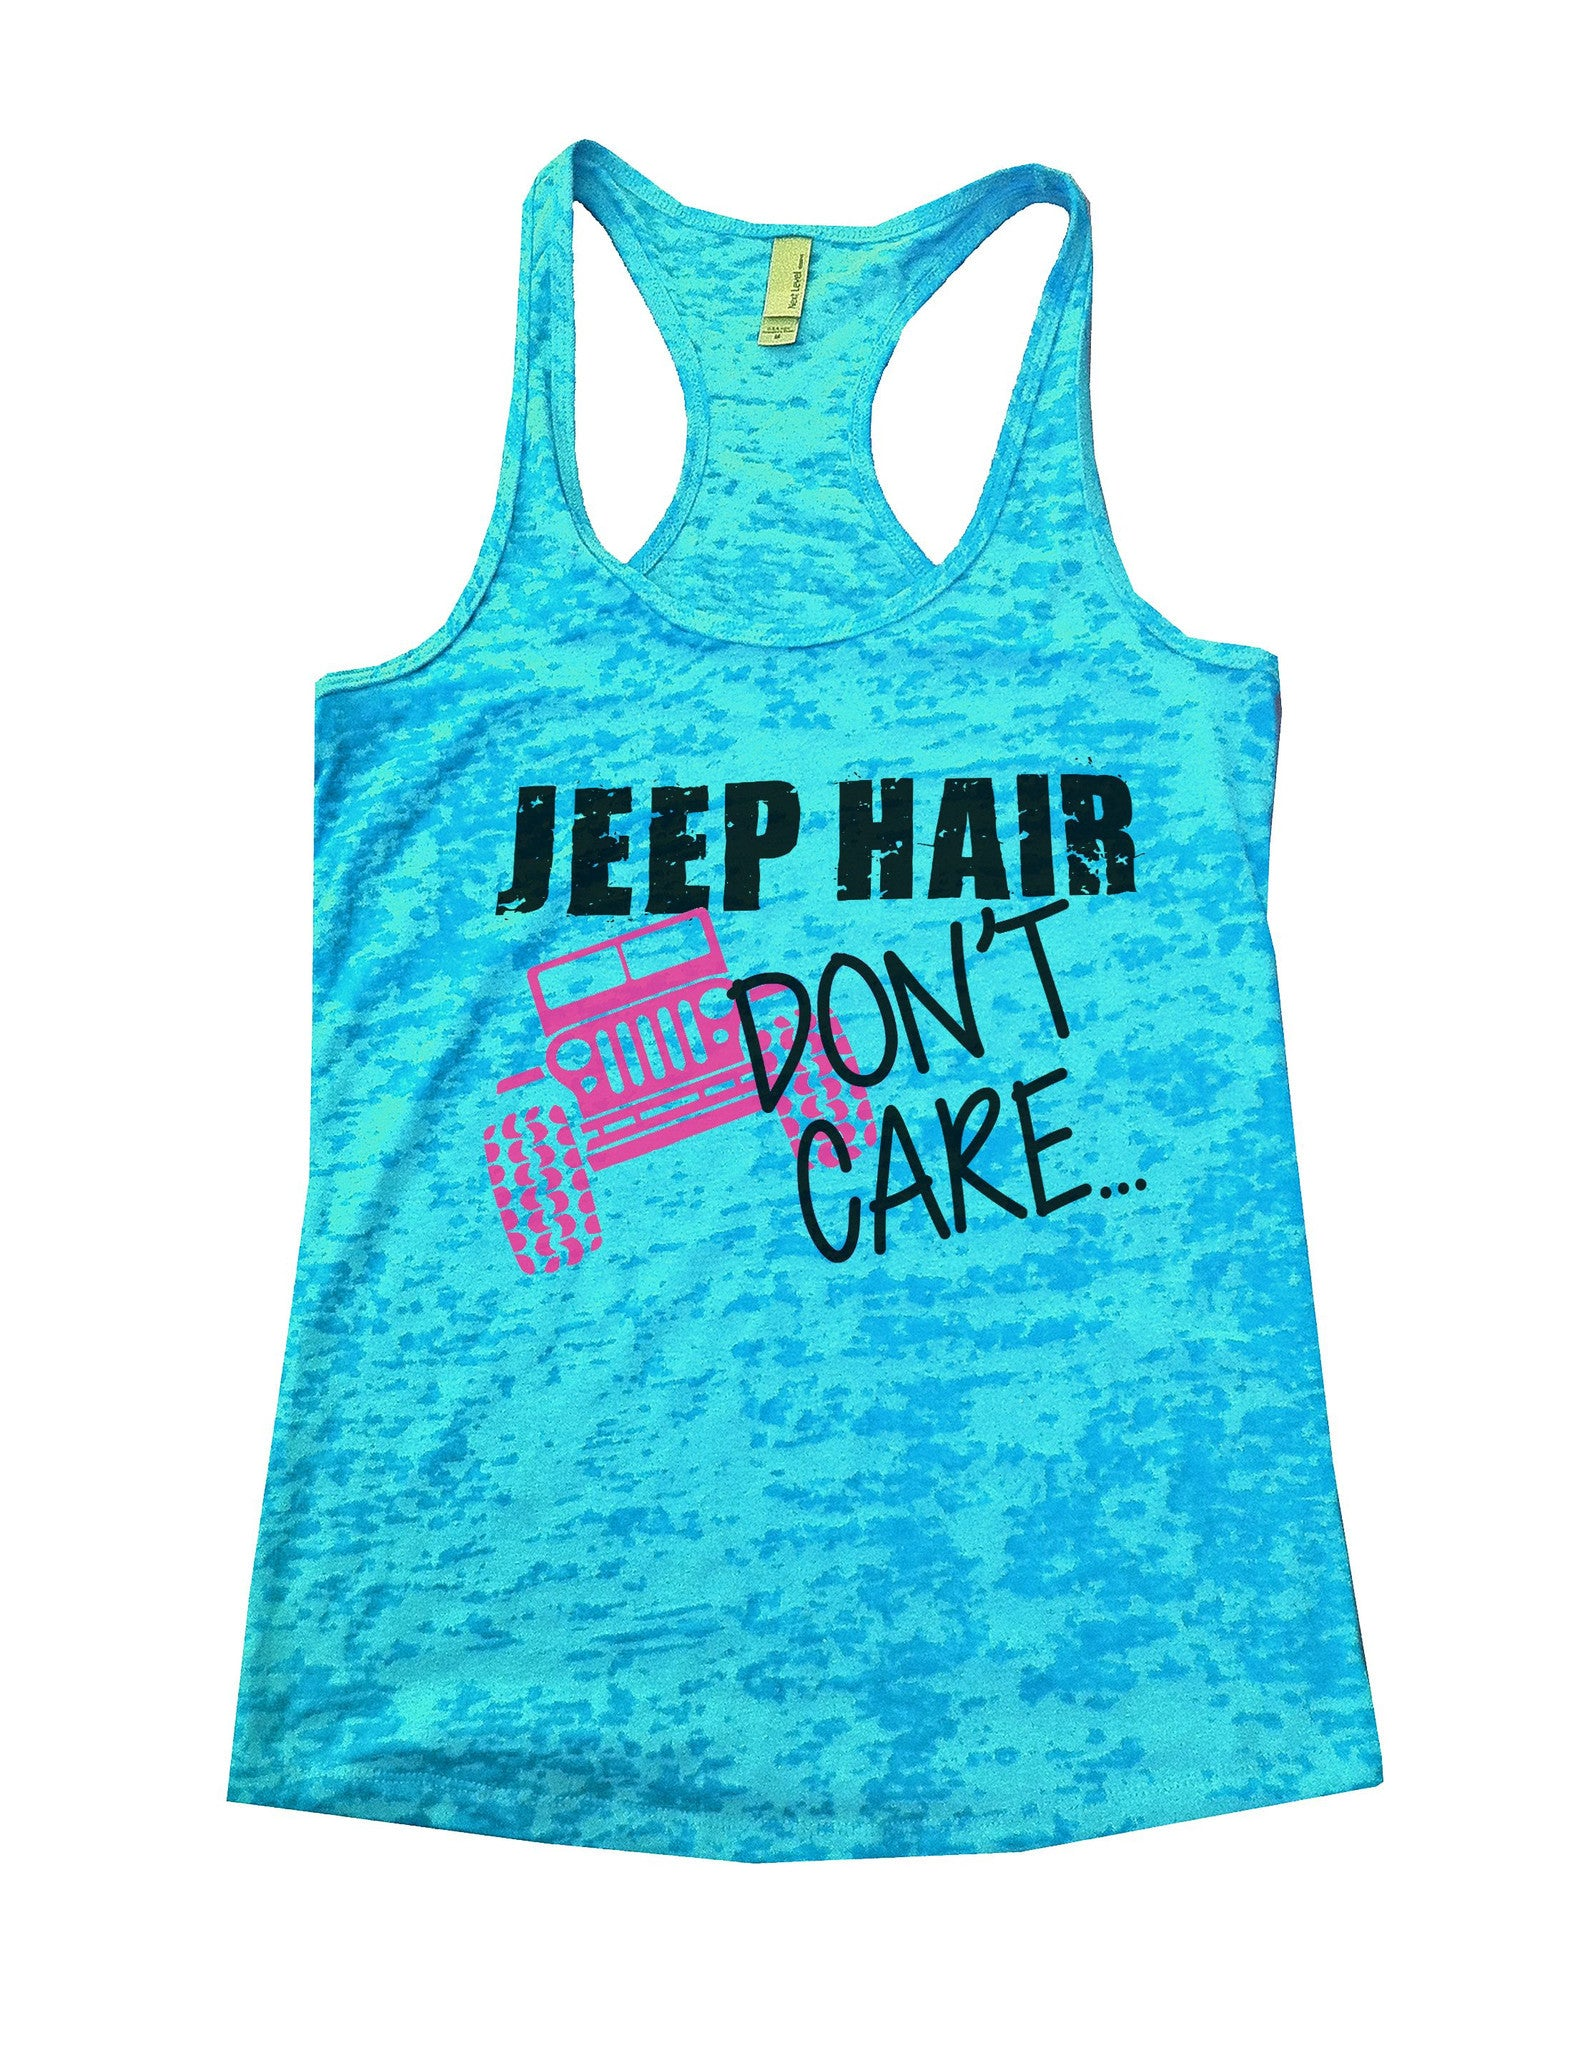 Jeep Hair Dont Care Burnout Tank Top By BurnoutTankTops.com - 729 - Funny Shirts Tank Tops Burnouts and Triblends  - 5